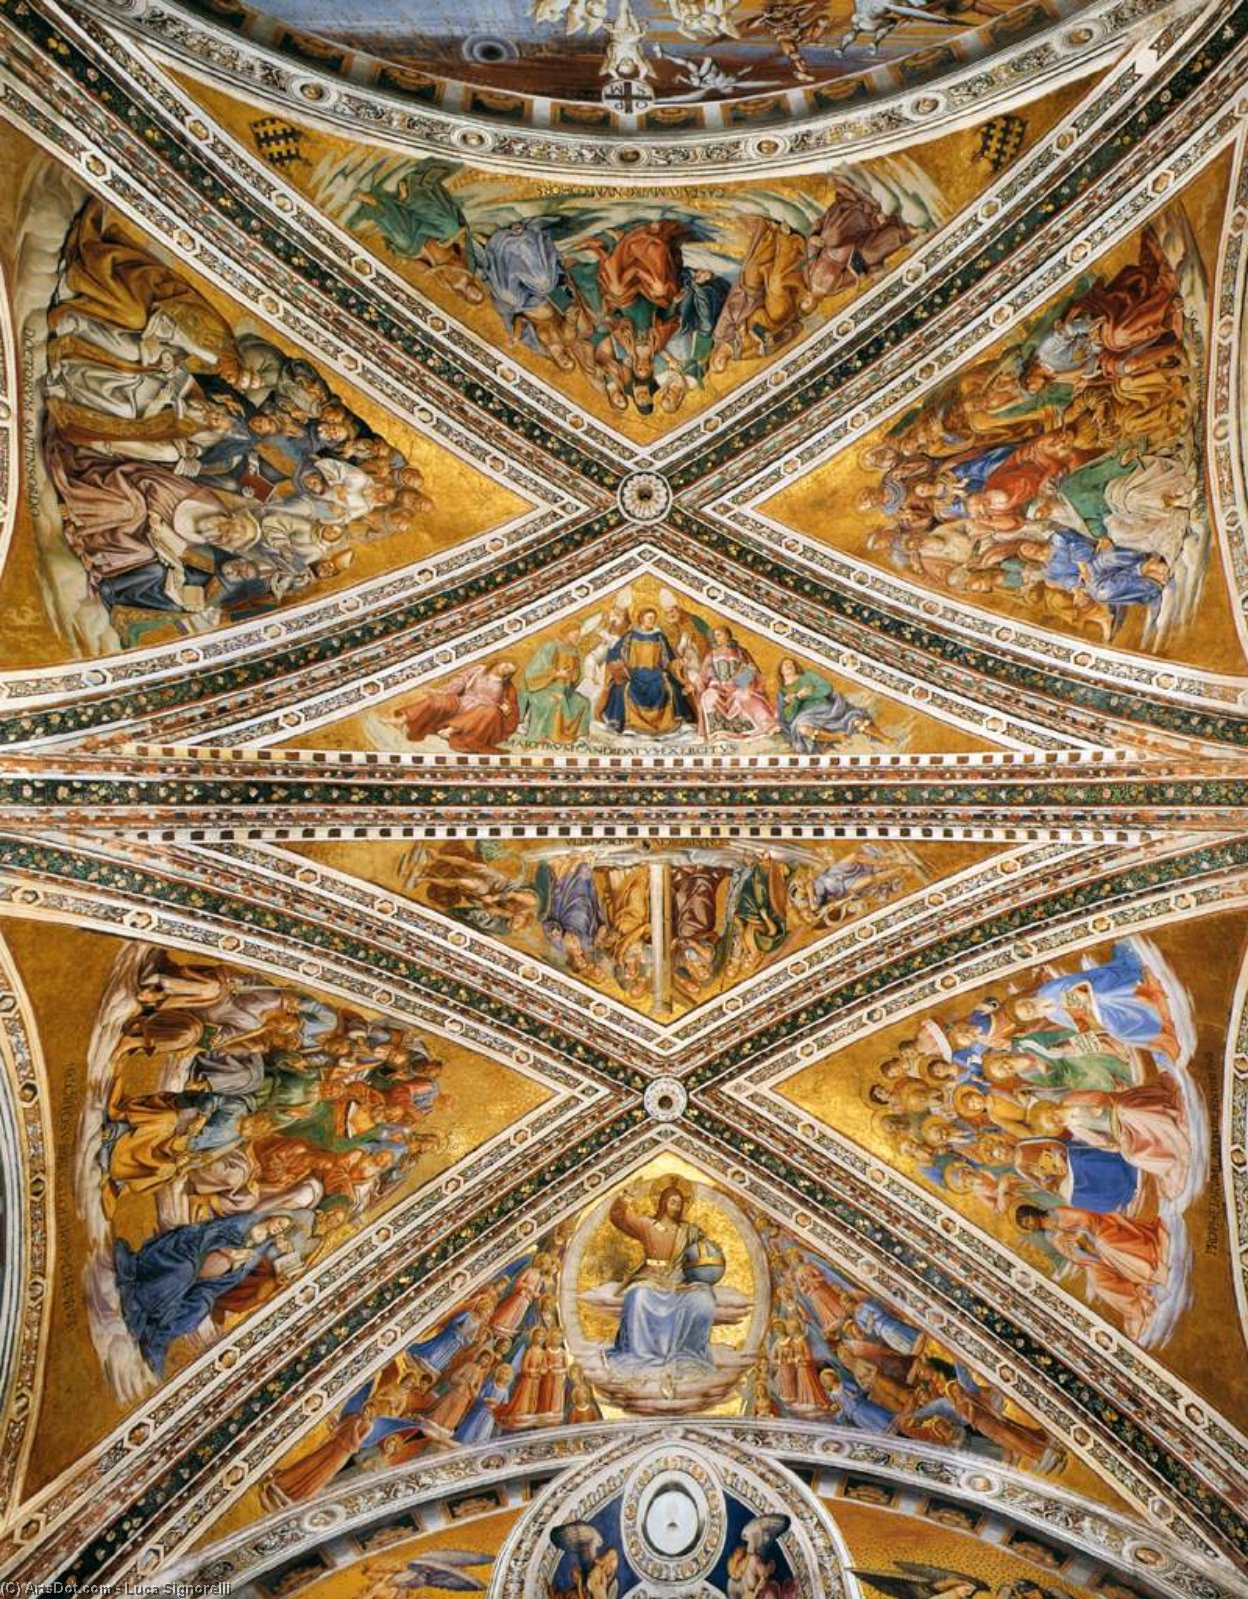 Ceiling Frescoes in the Chapel of San Brizio, Frescoes by Luca Signorelli  (order Fine Art oil painting Luca Signorelli)